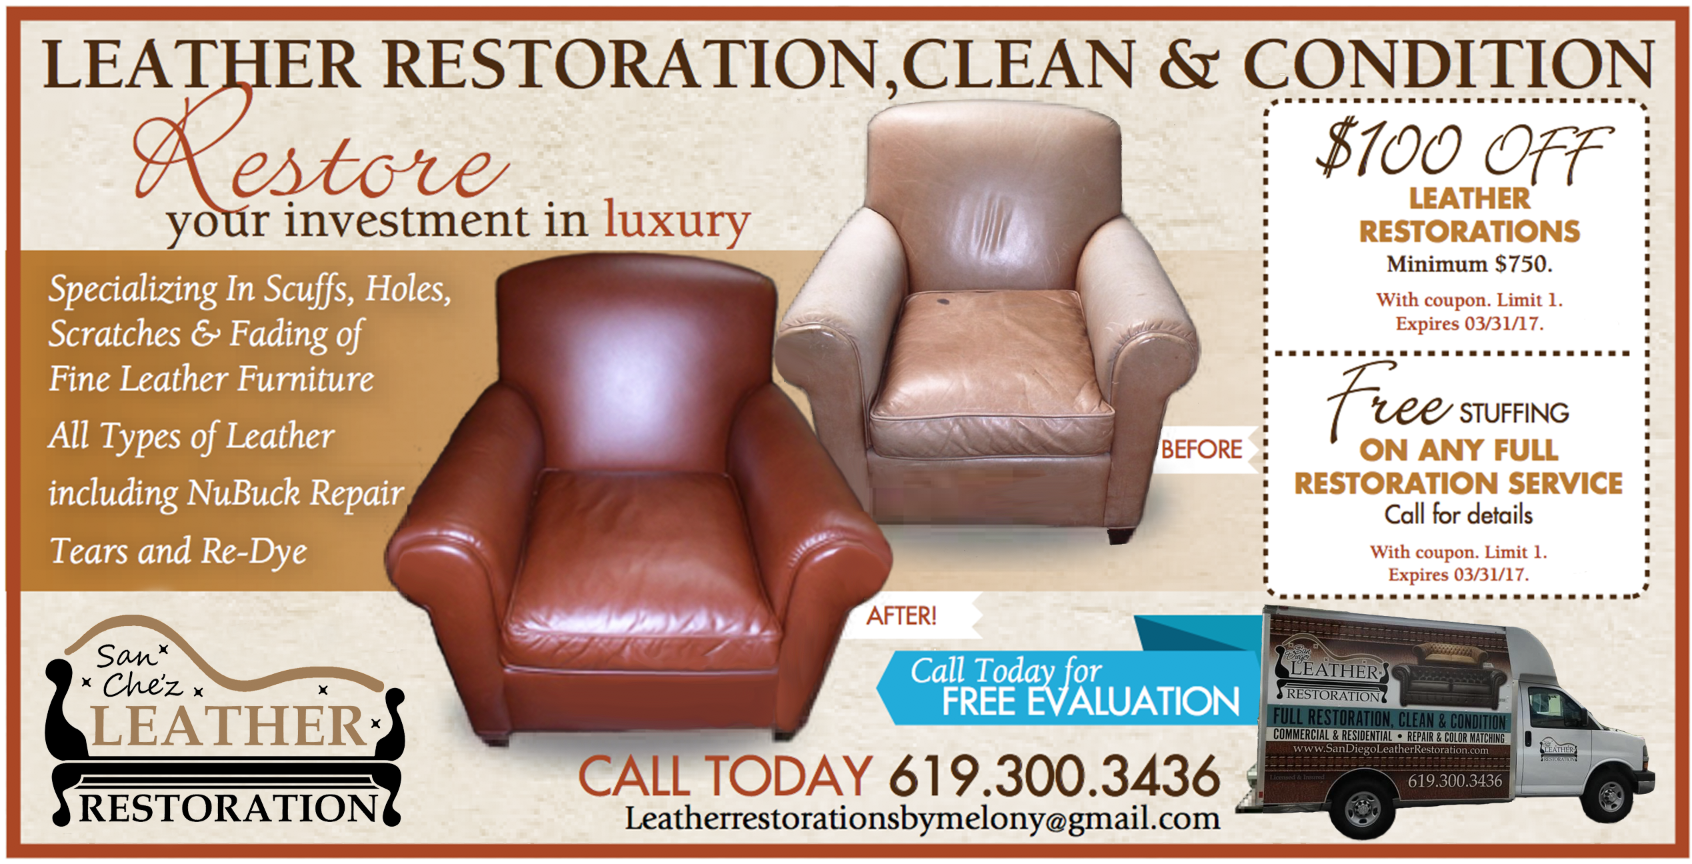 Sanchez Restoration Flyer